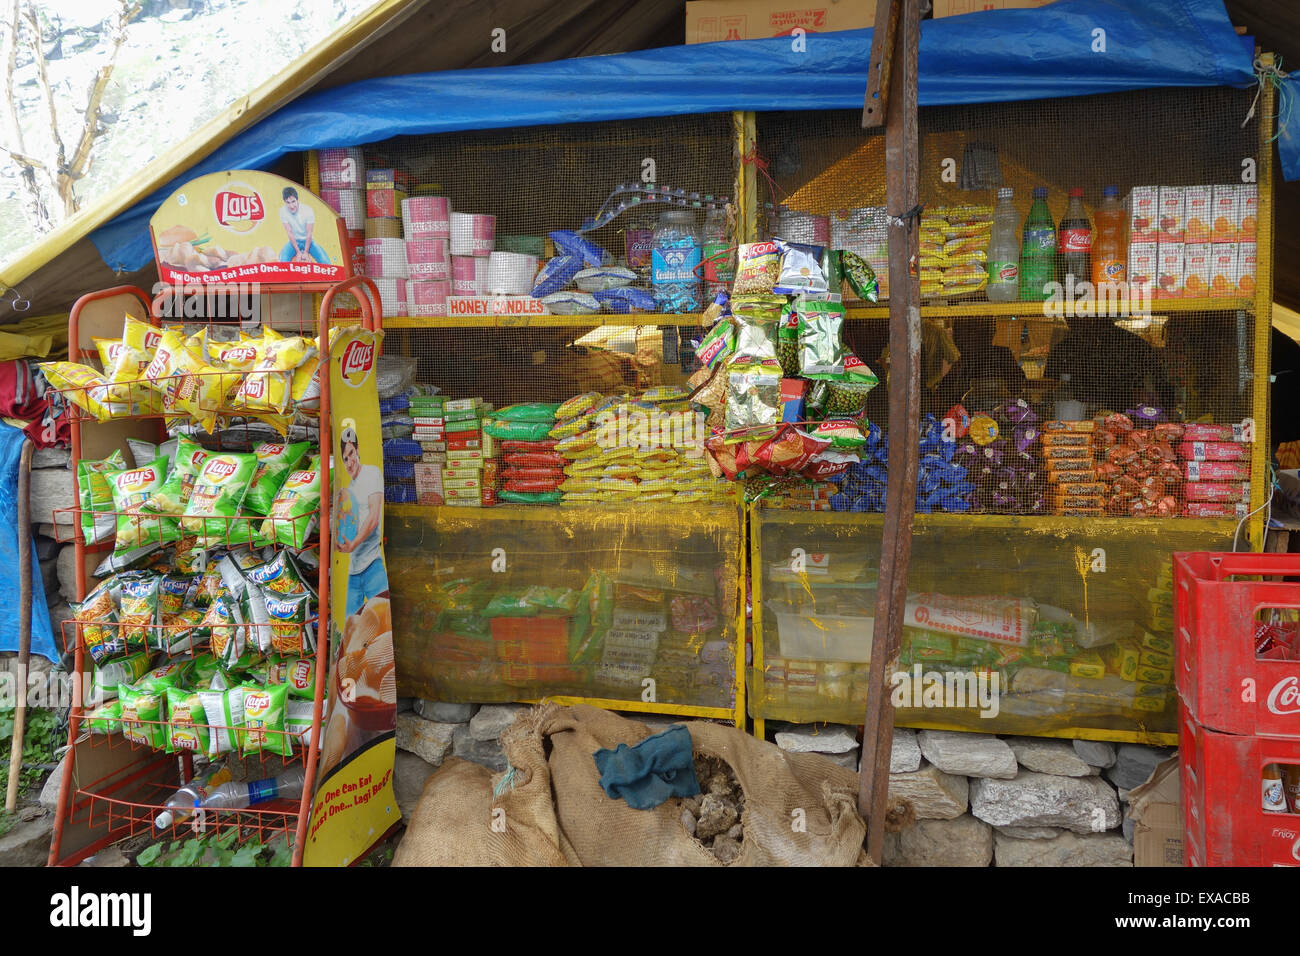 CHHATRU, HIMACHAL PRADESH, NORTHERN INDIA - 29 JUNE 2013: Chhatru is a popular rest stop on the journey between - Stock Image